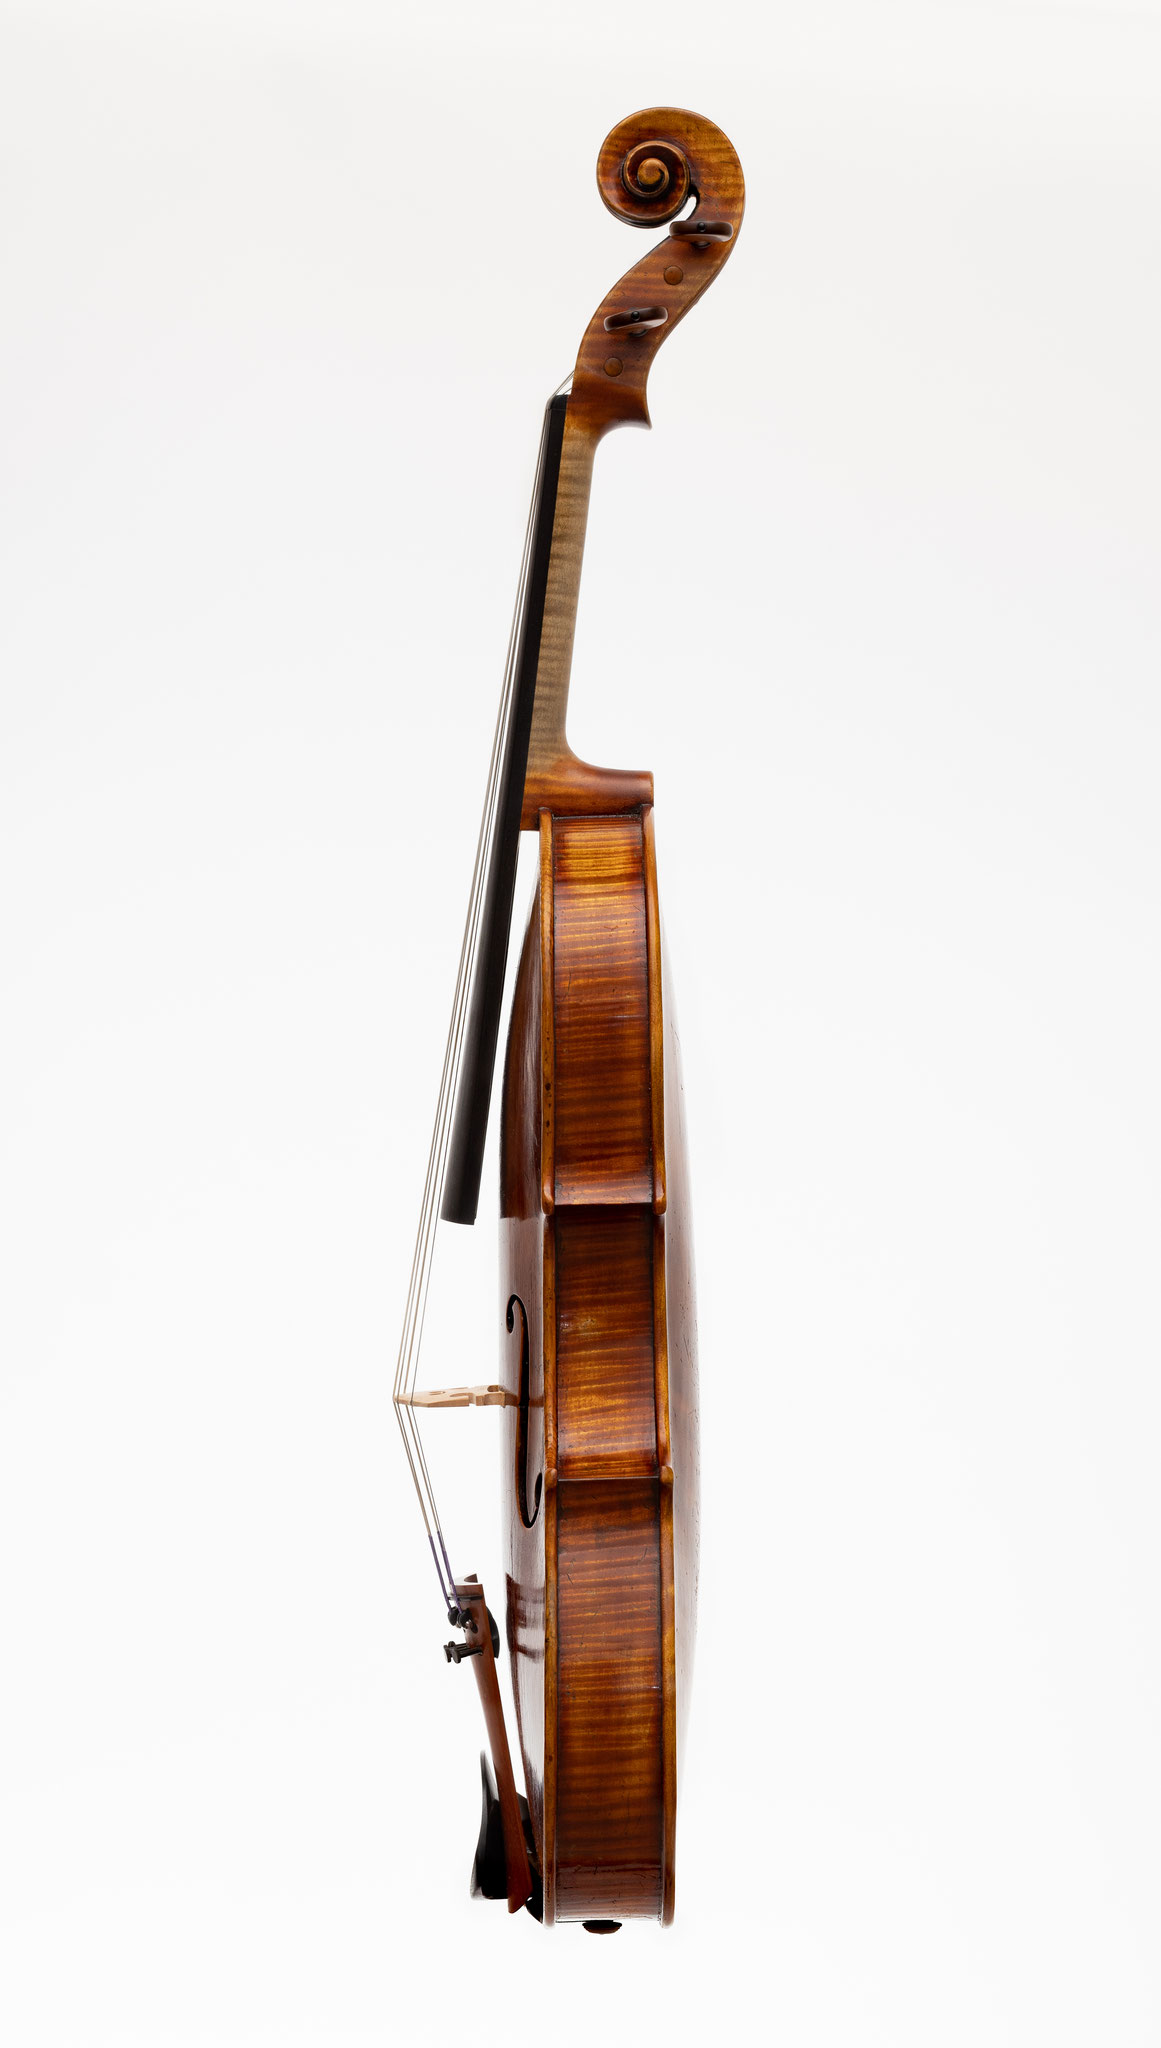 Viola in the style of G.Guarneri del Gesù (2019/CH), Photo: VDB Photography